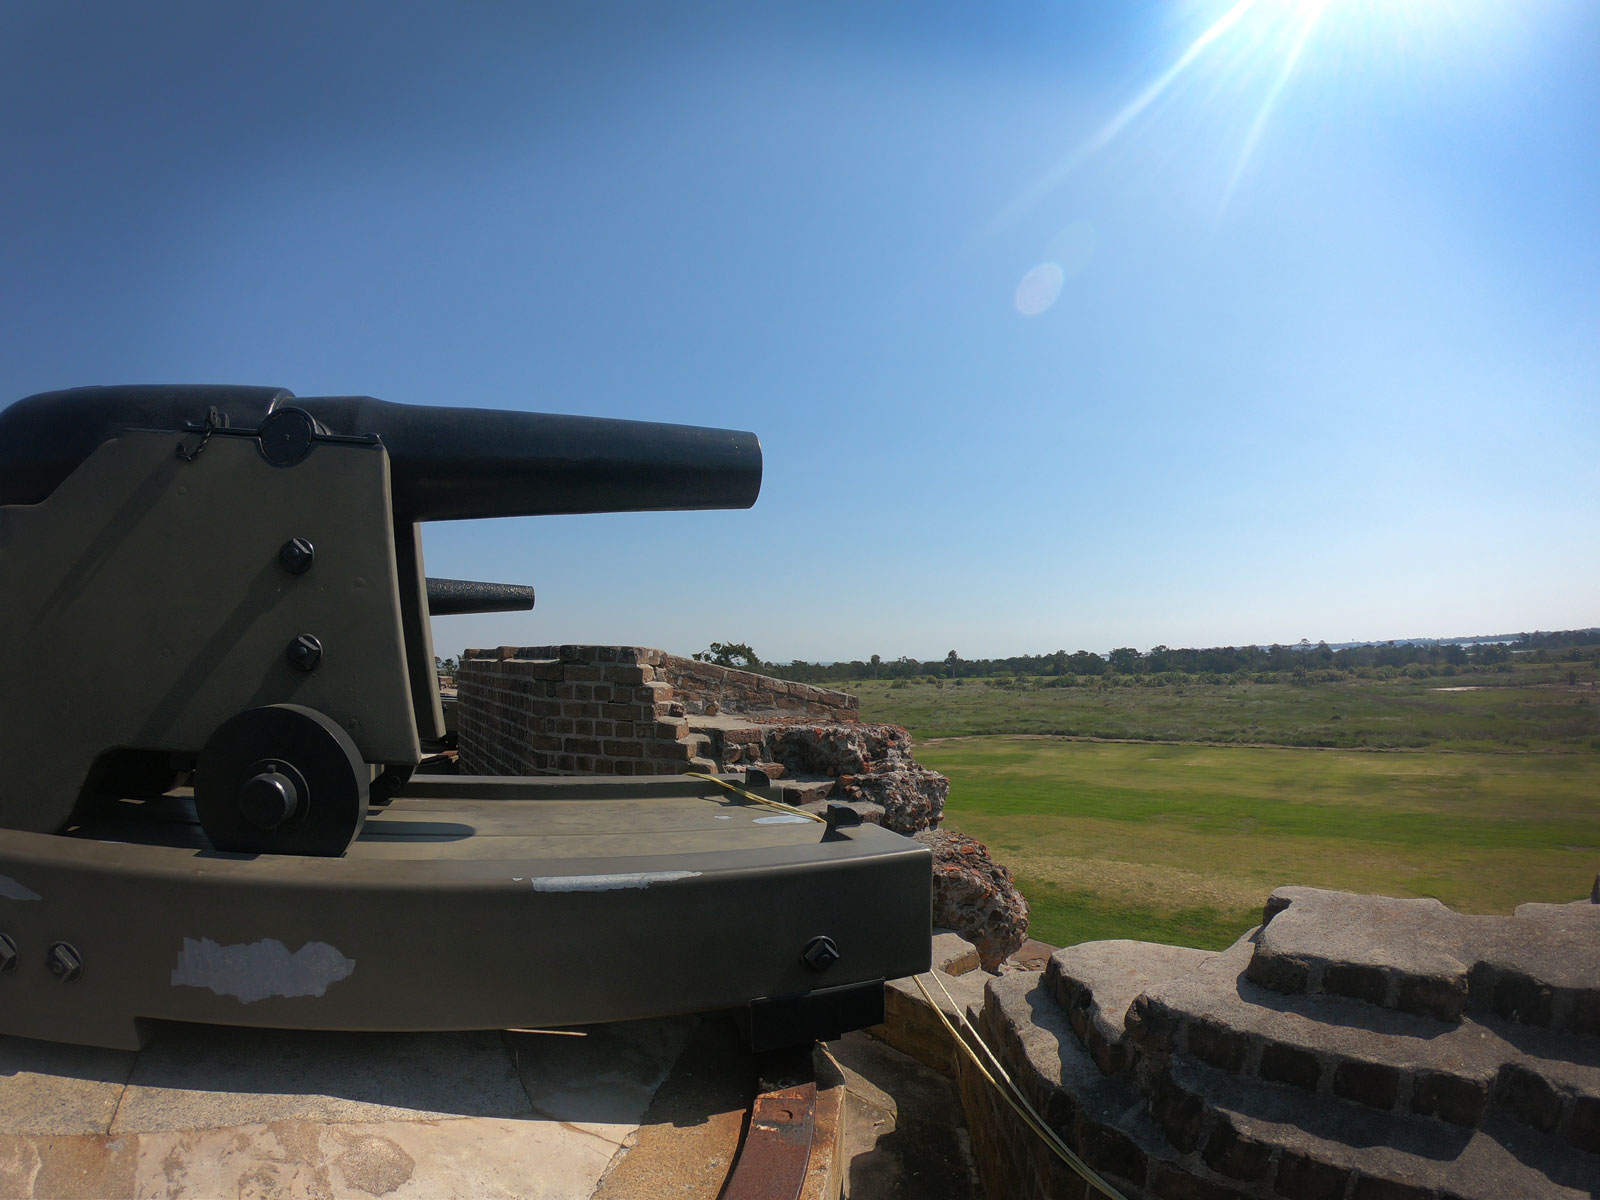 Cannon mounted on exterior wall of Fort Pulaski National Monument, Georgia